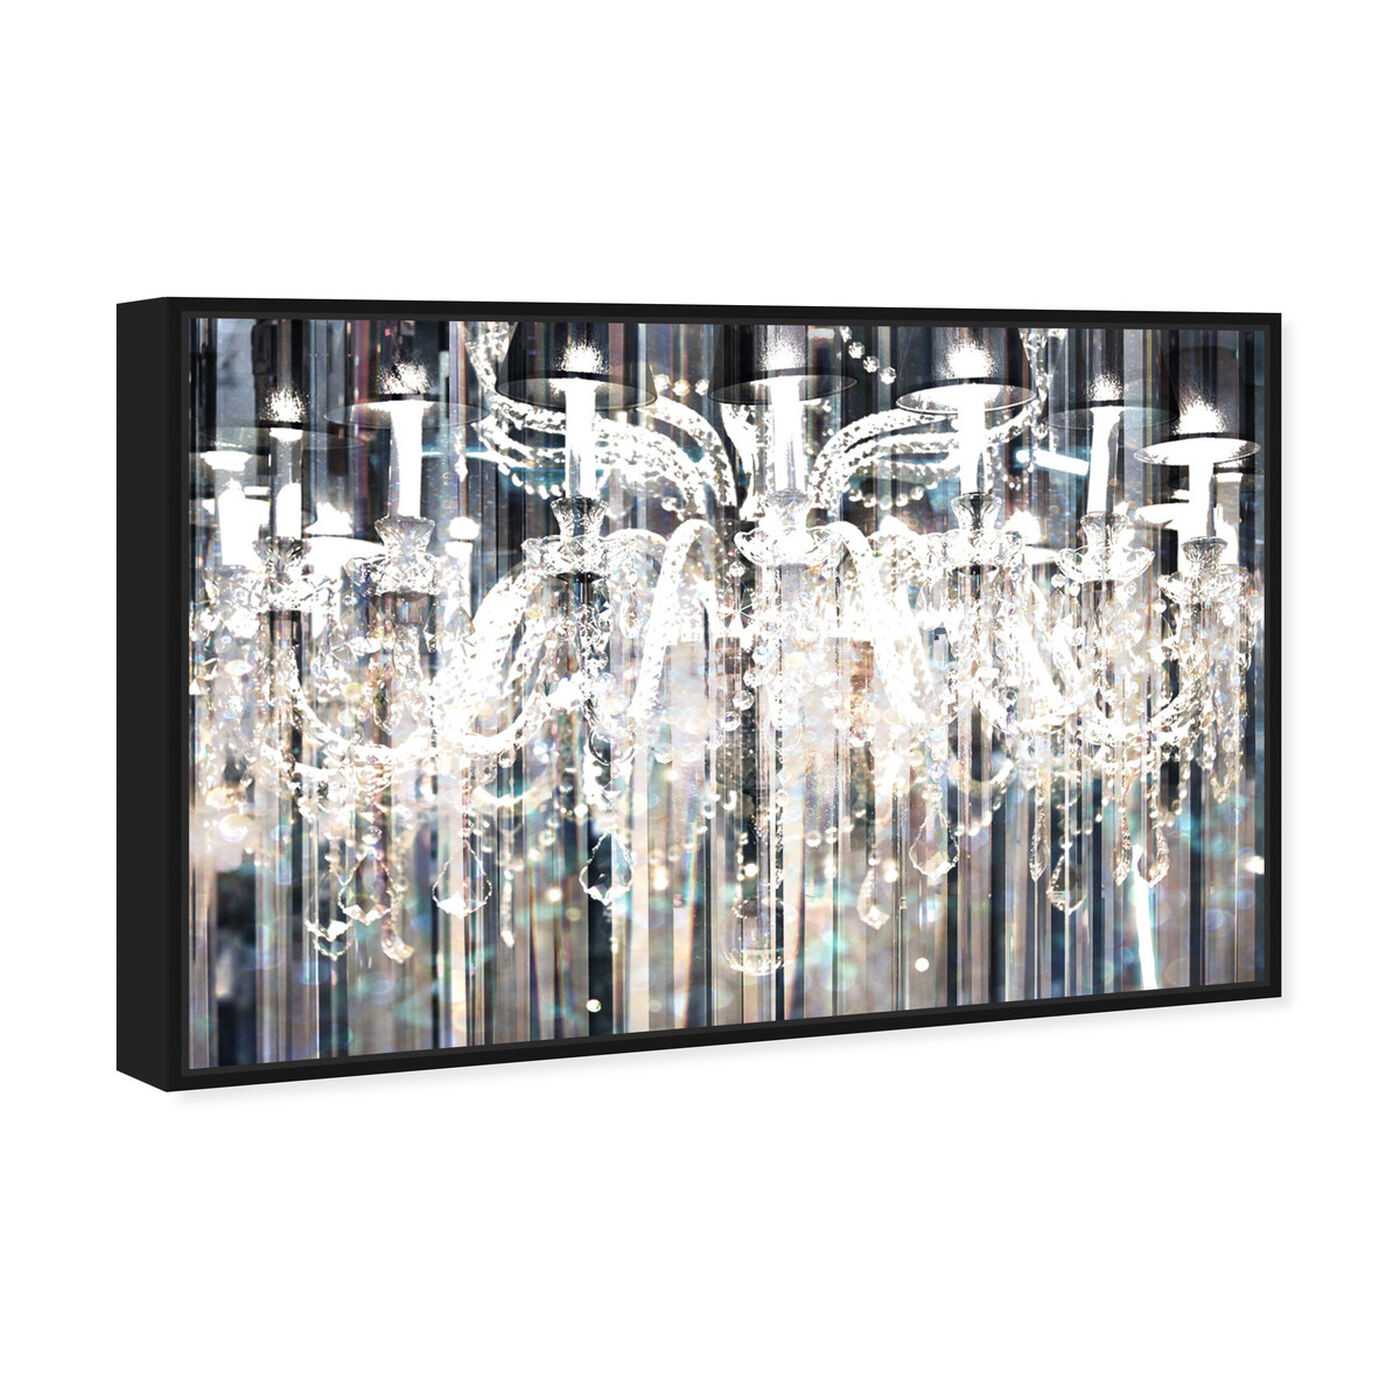 Angled view of Diamond Shower featuring fashion and glam and chandeliers art.